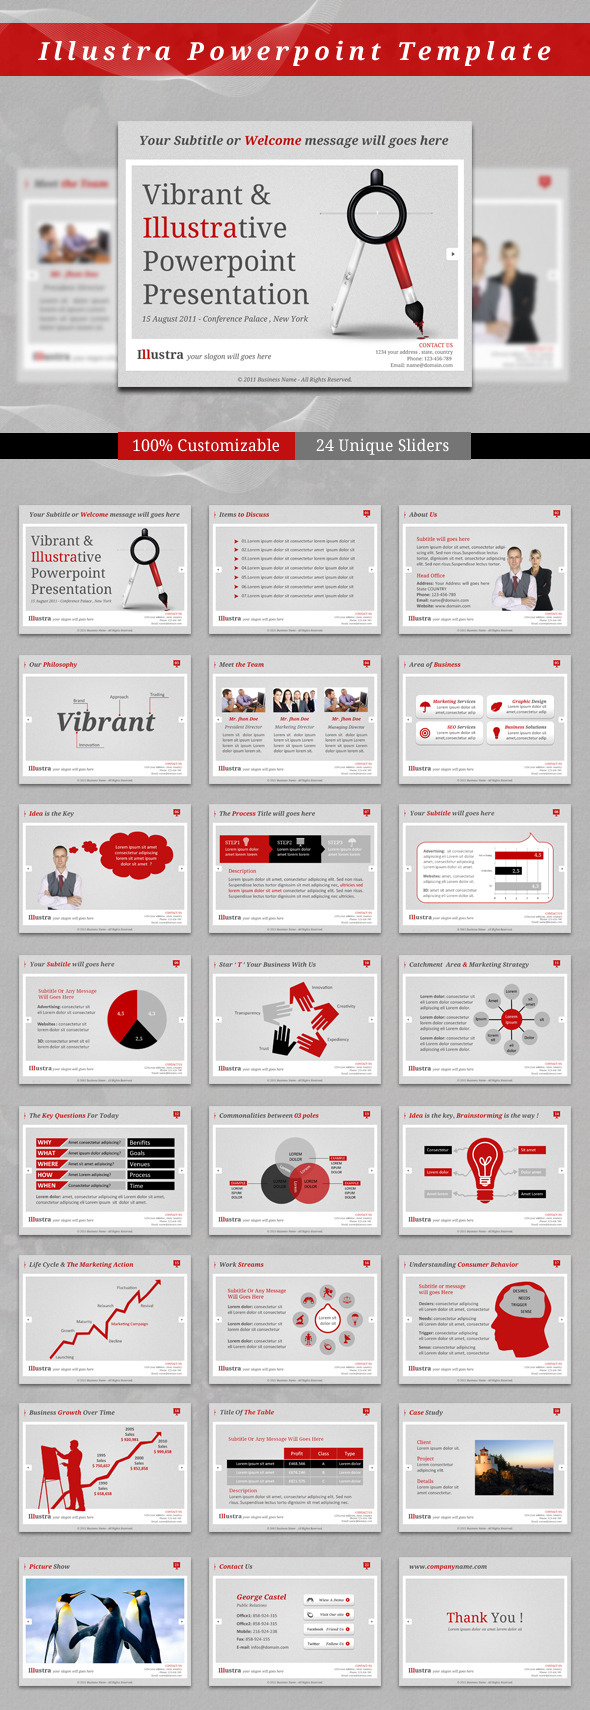 Illustra PowerPoint Template - Business Powerpoint Templates